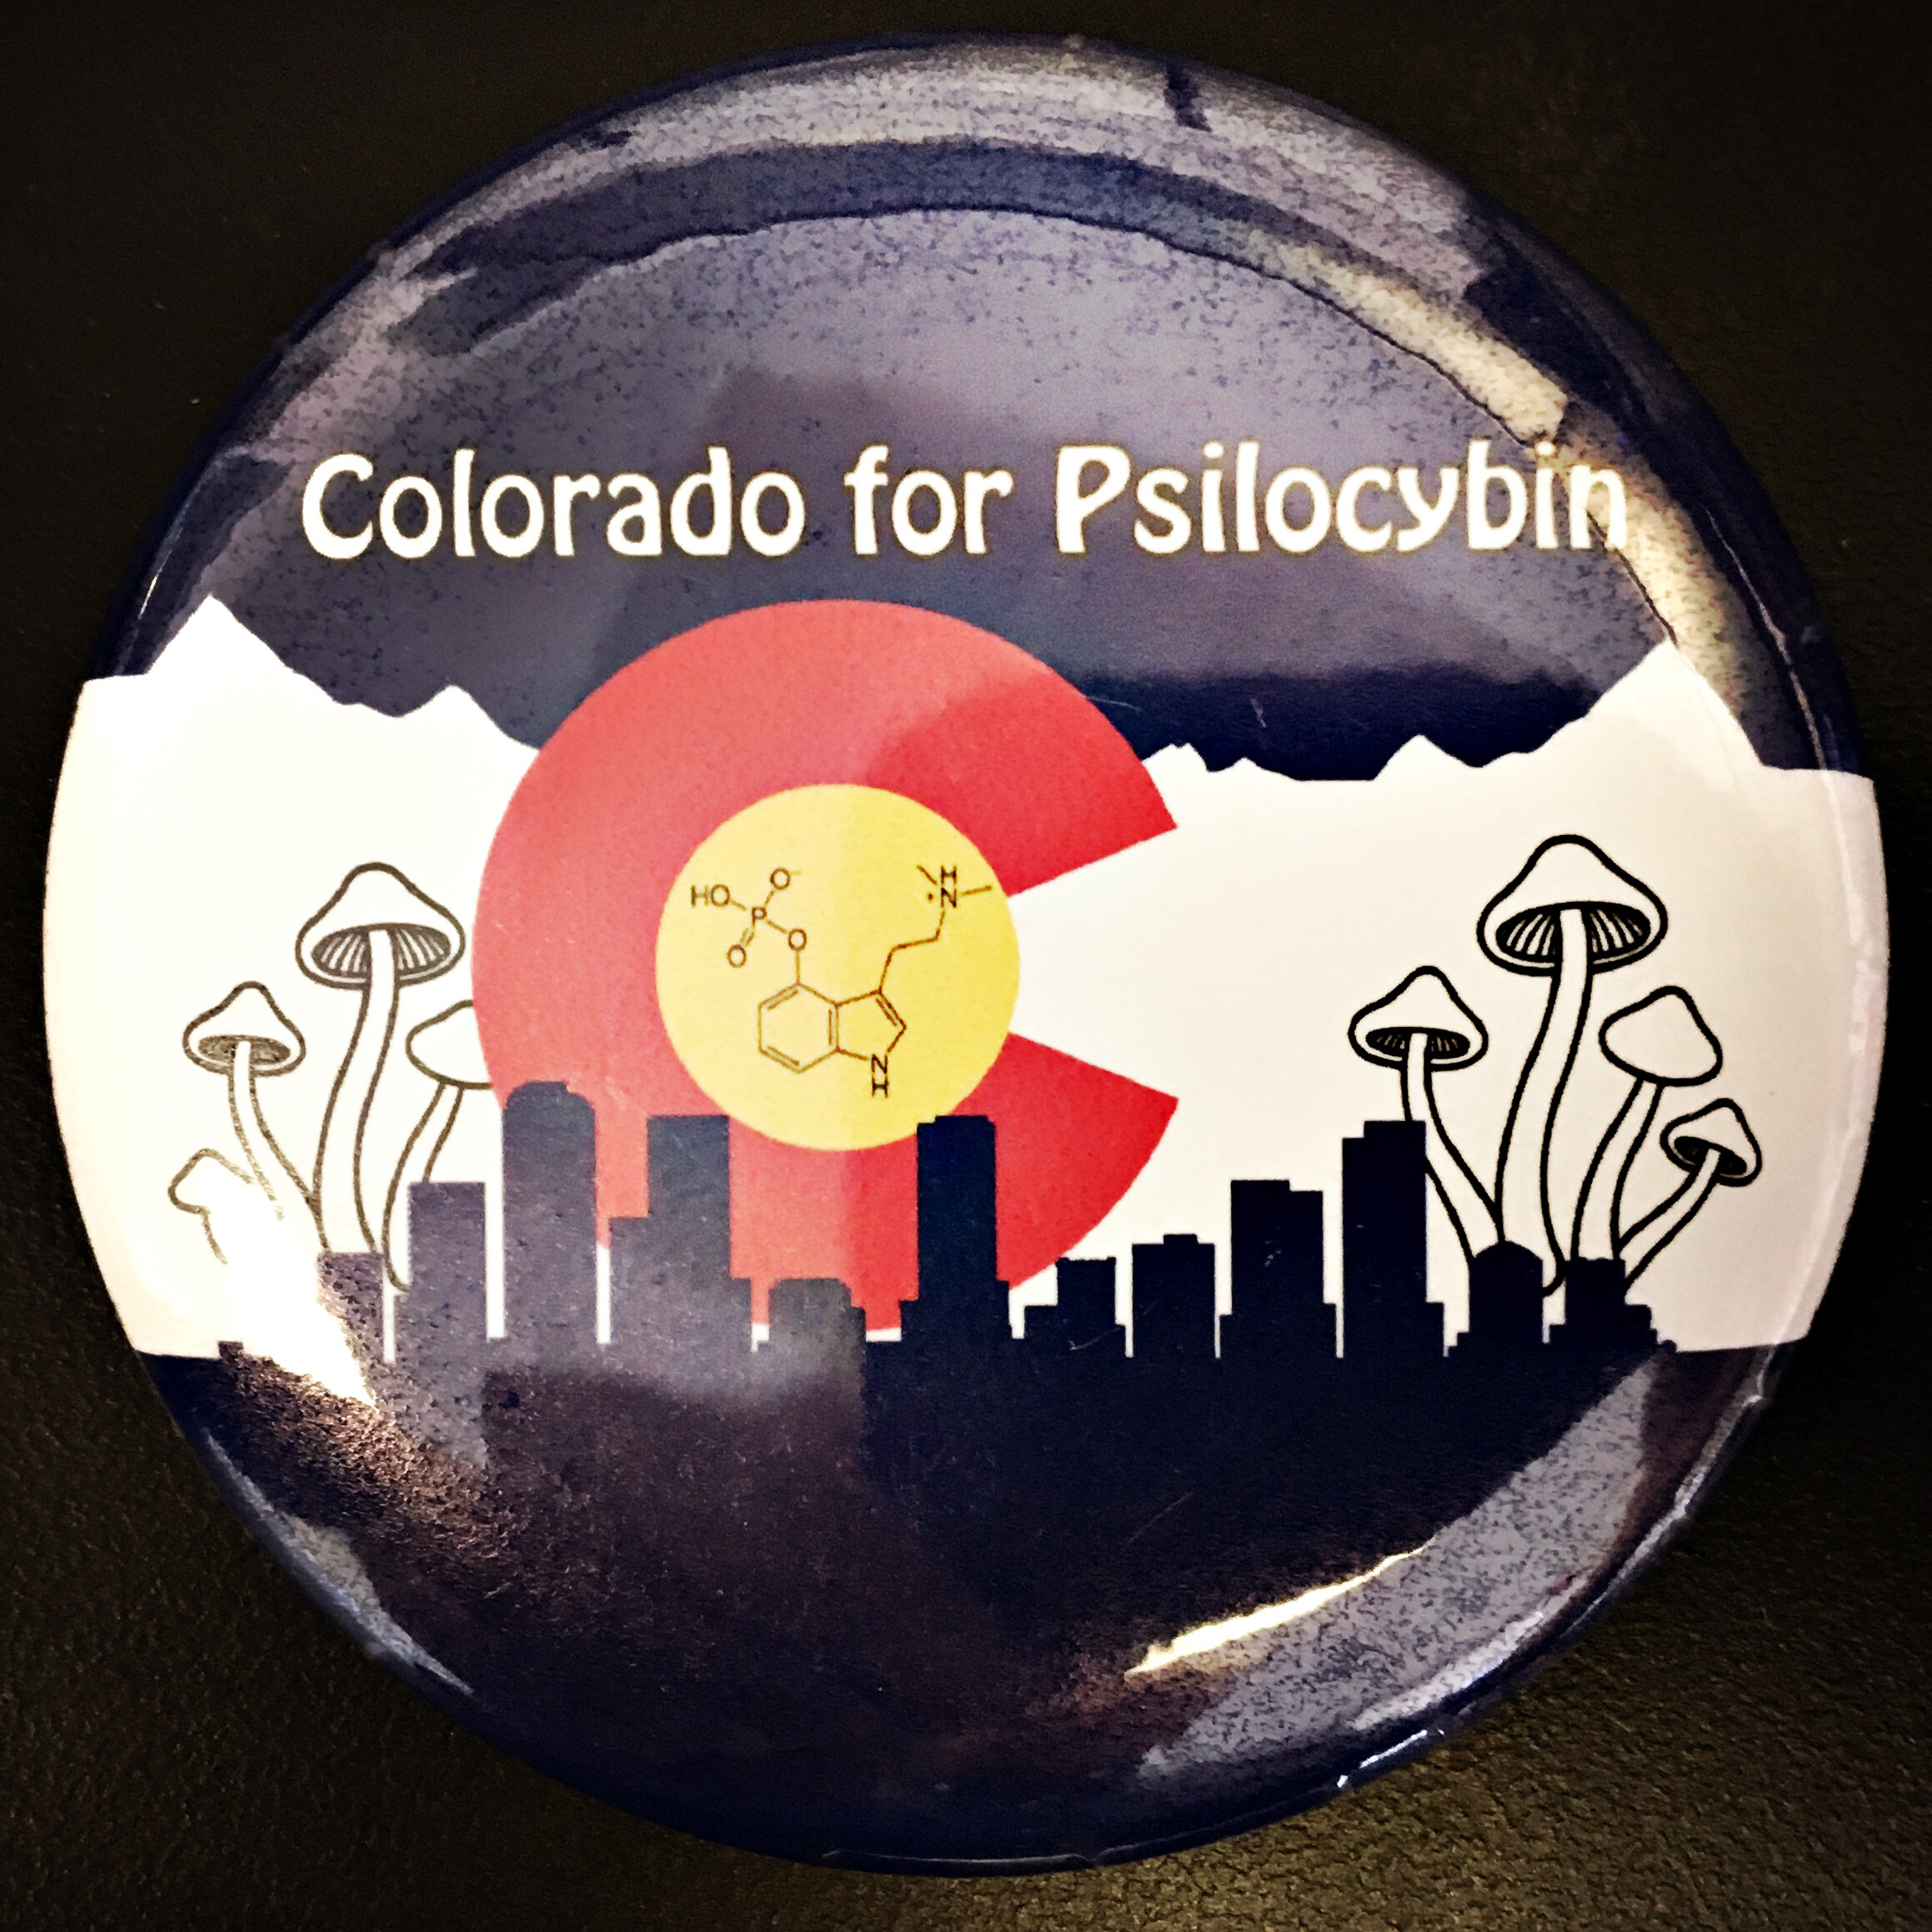 Denver May Get To Vote On Whether To Make Magic Mushrooms